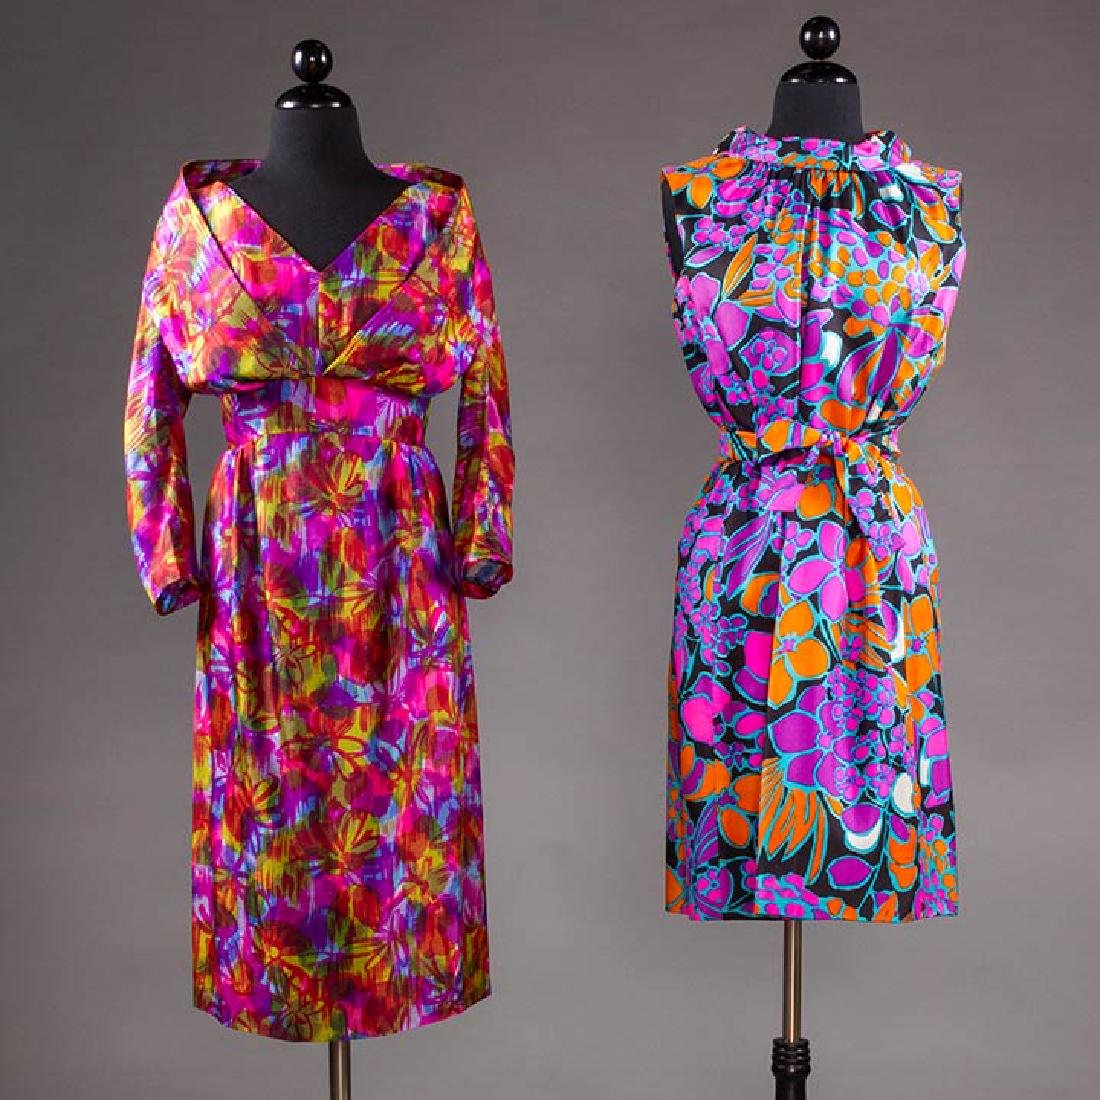 TWO COLORFULLY PRINTED SILK PARTY DRESSES, 1960s